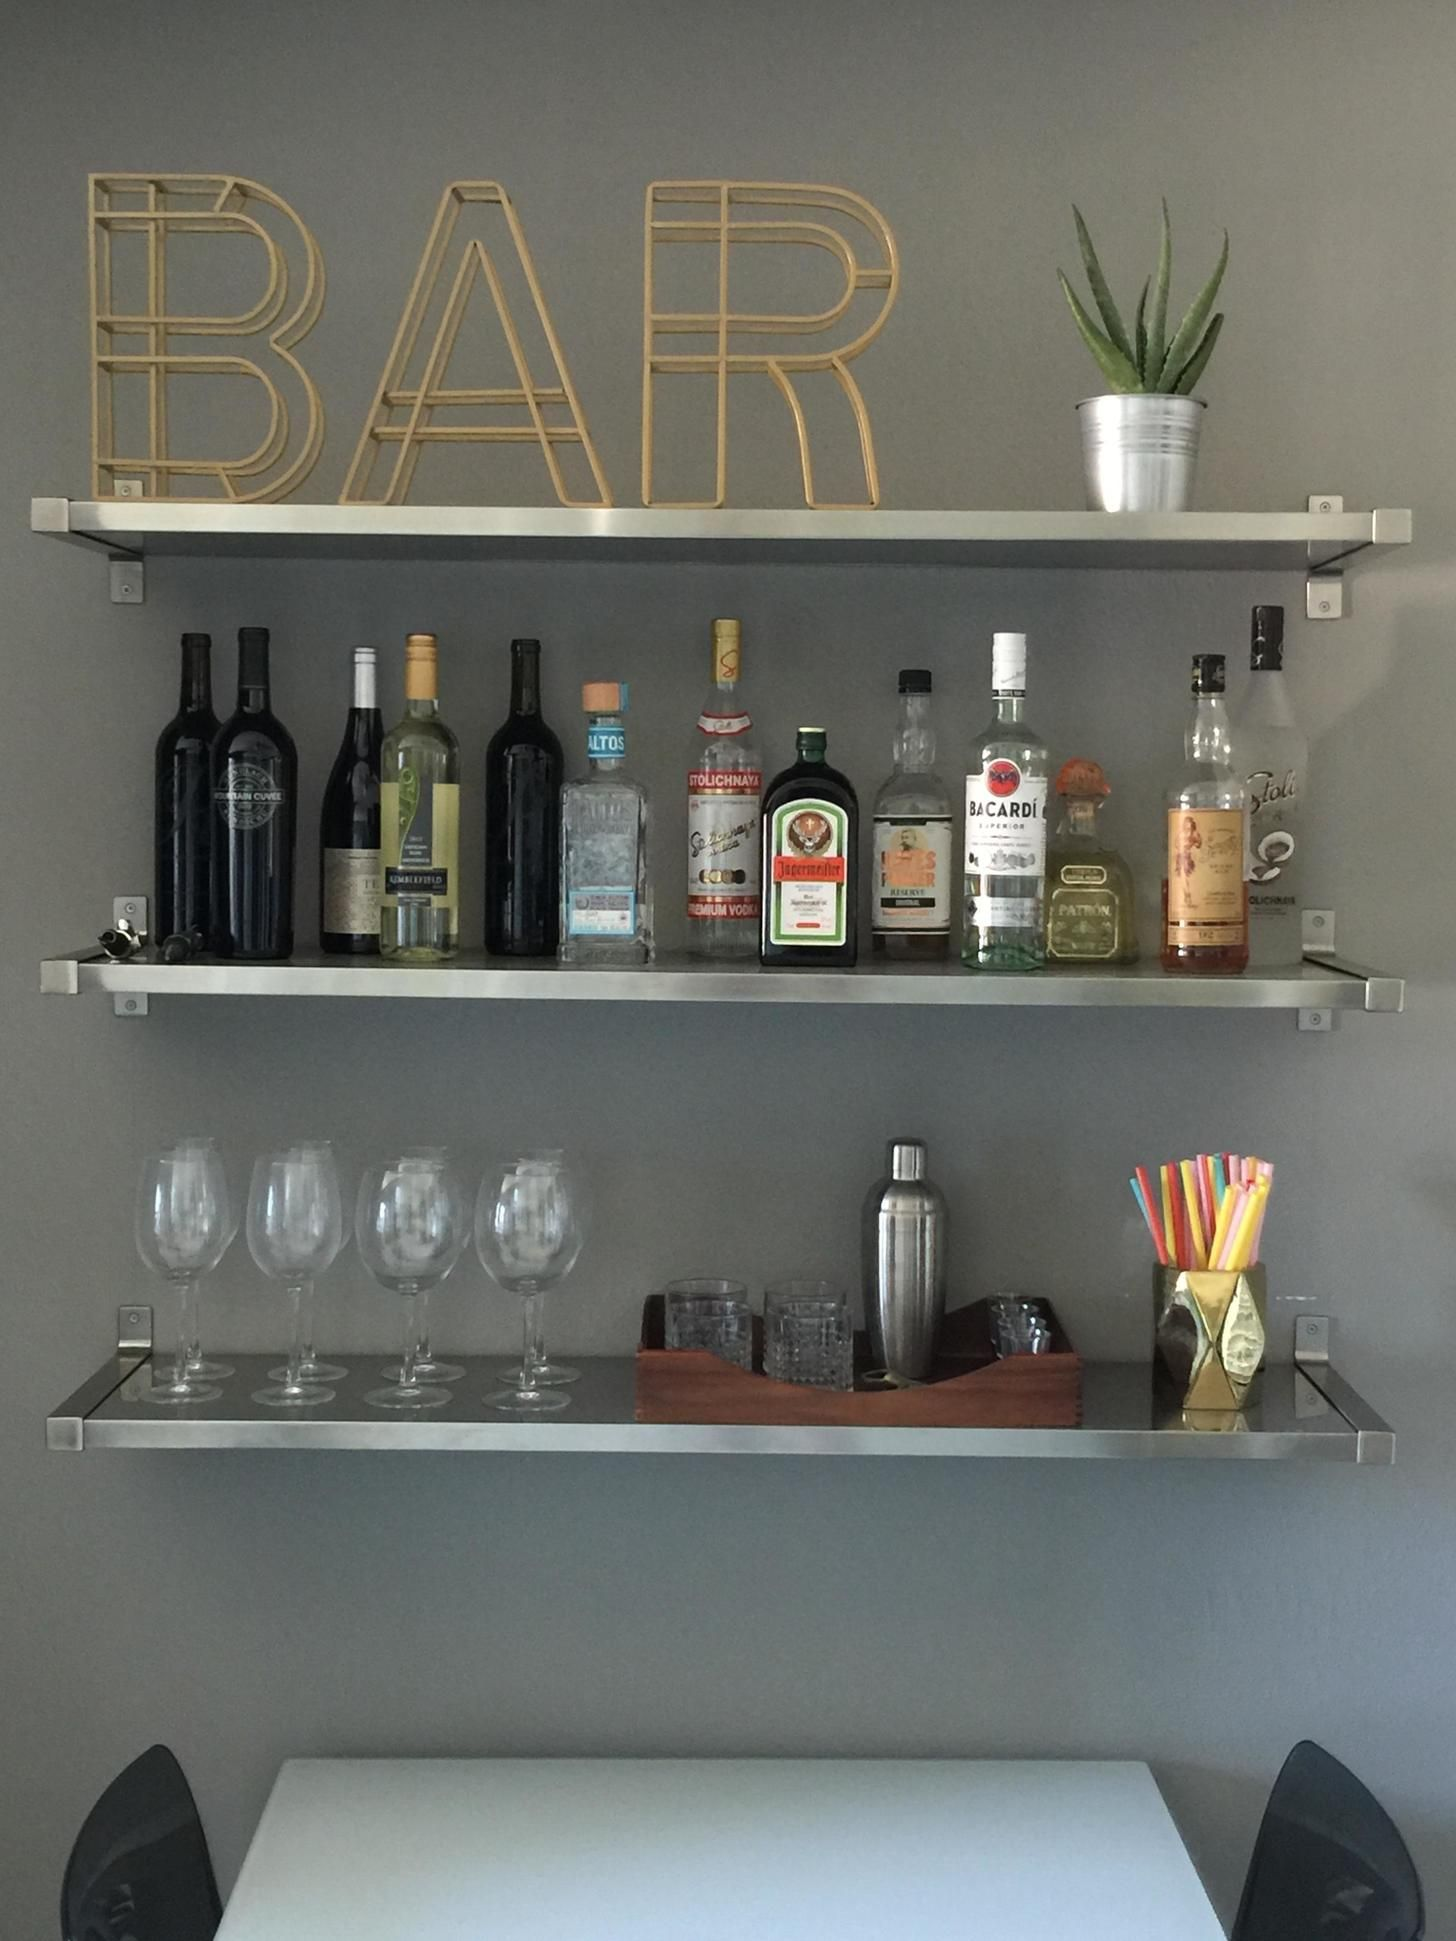 When you canut fit a bar table or cabinet bar tables had to